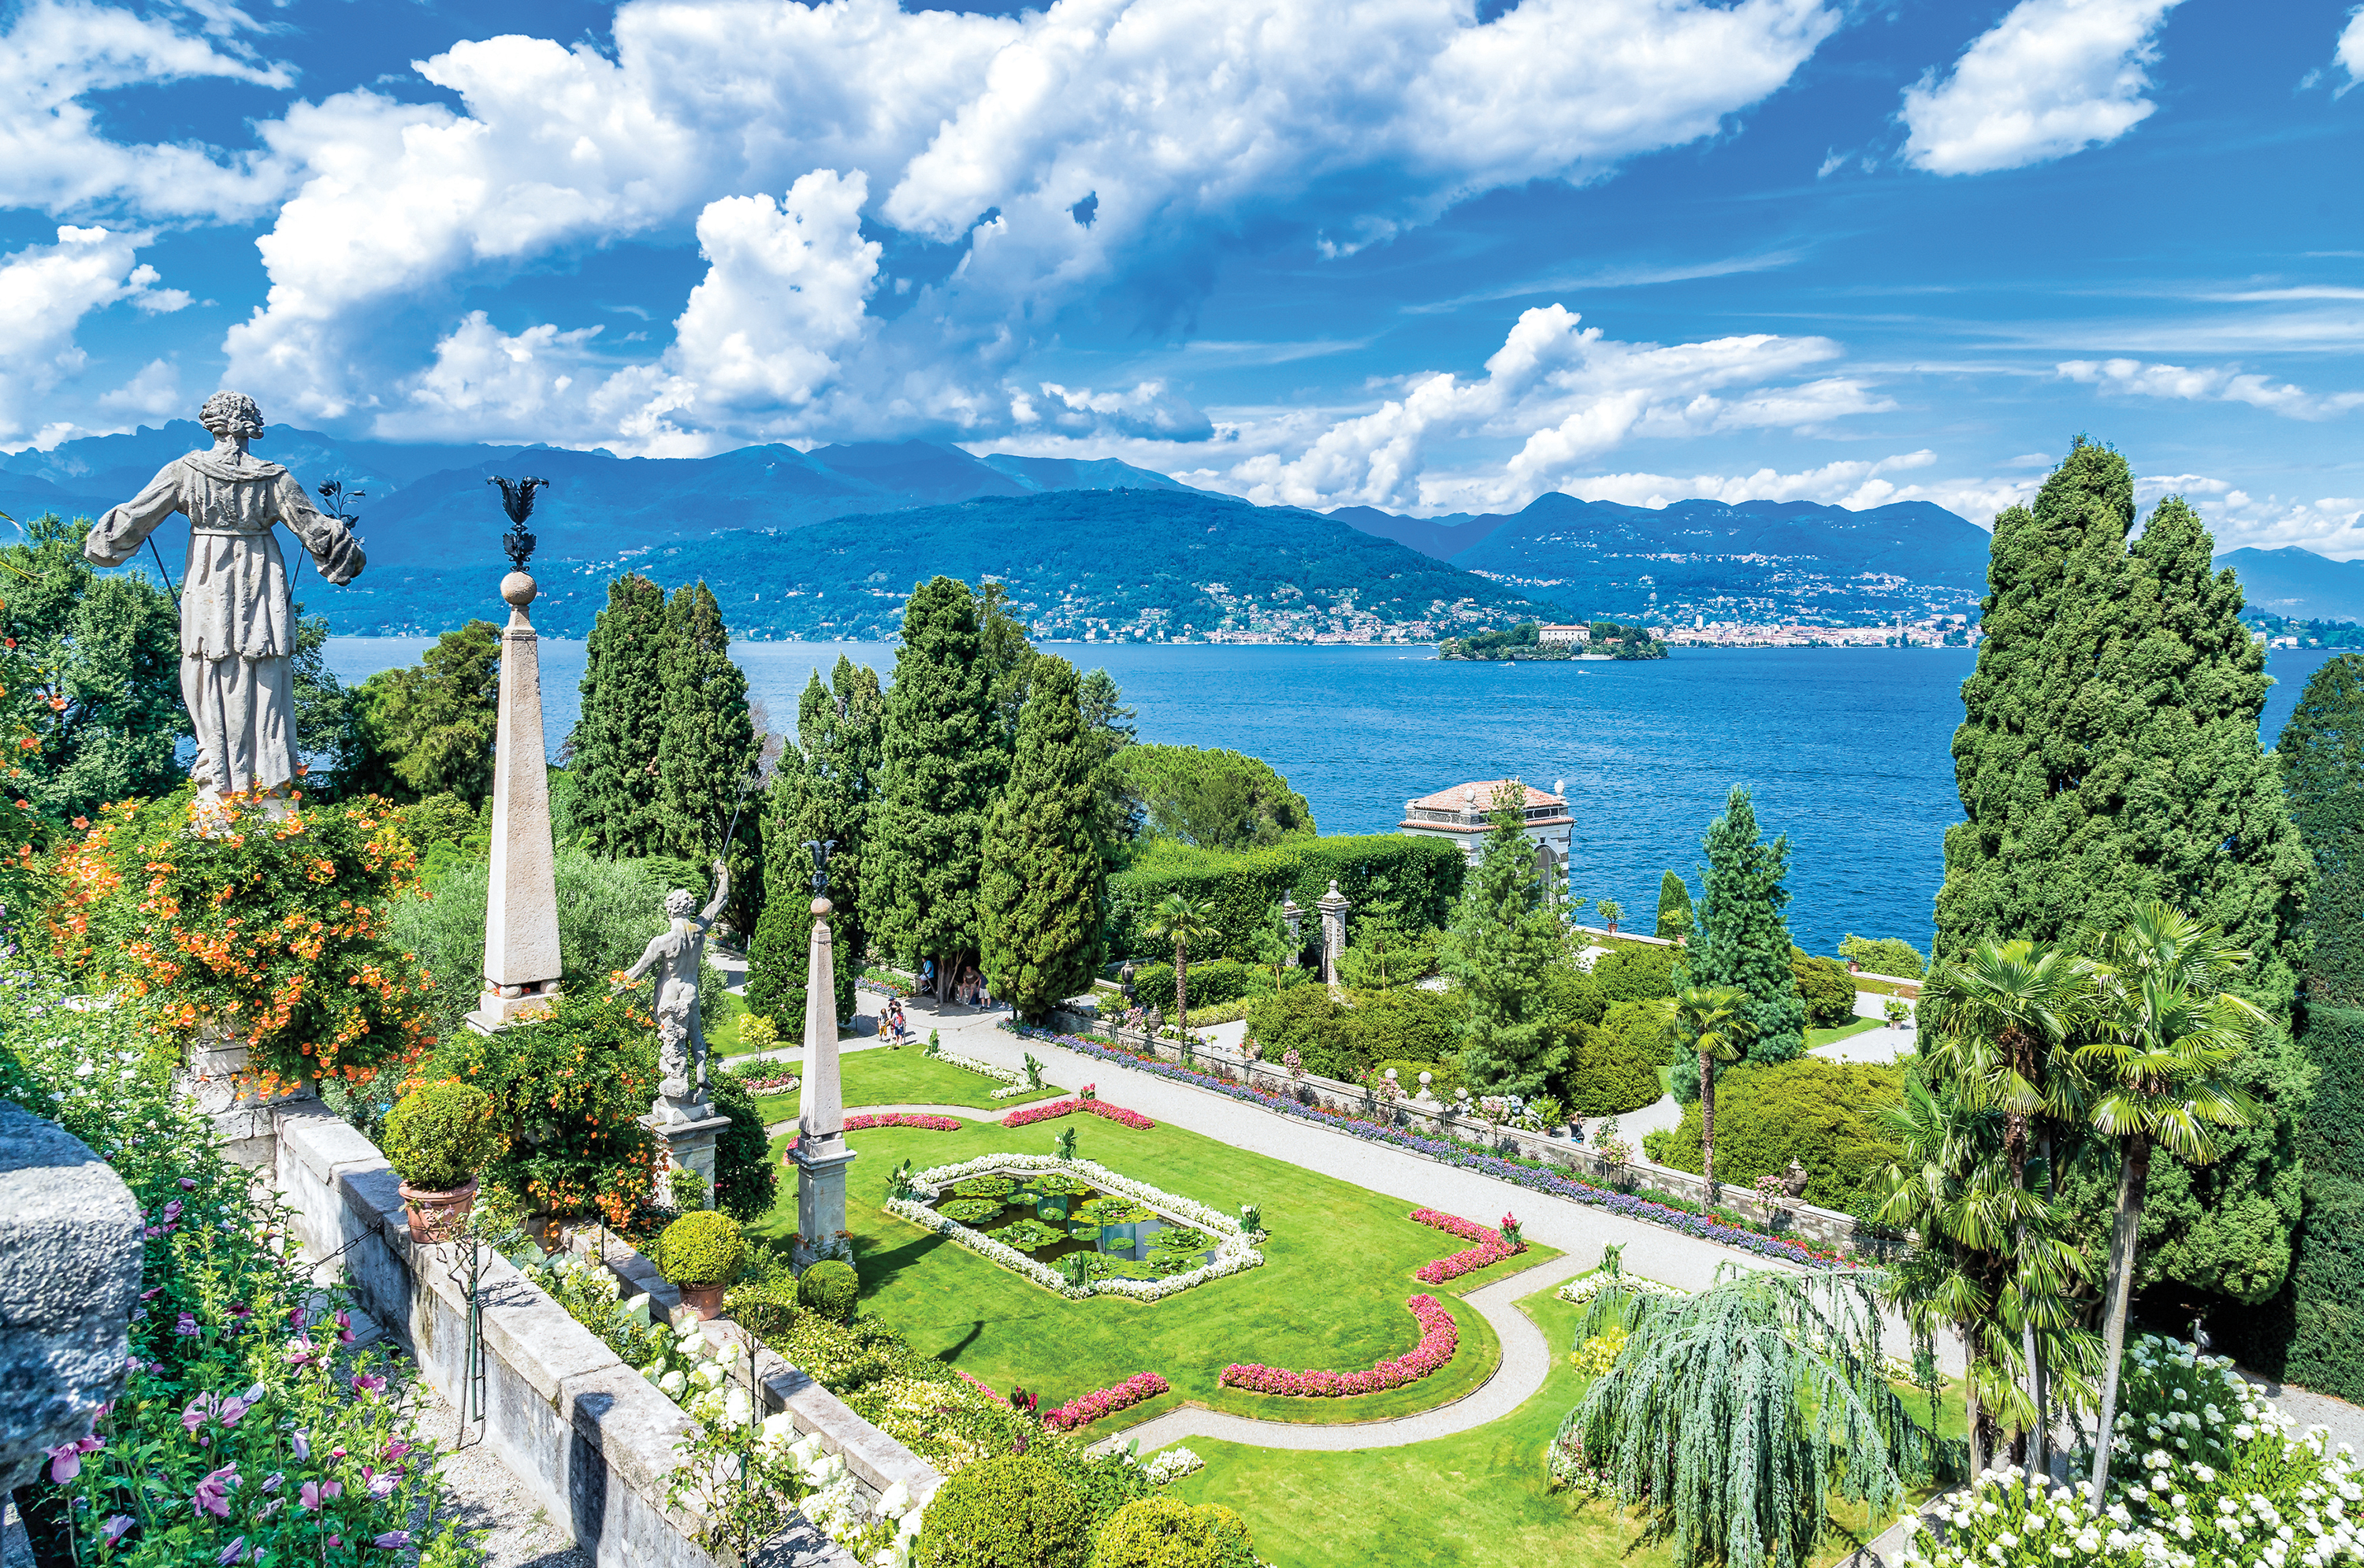 Baroque garden of Isola Bella